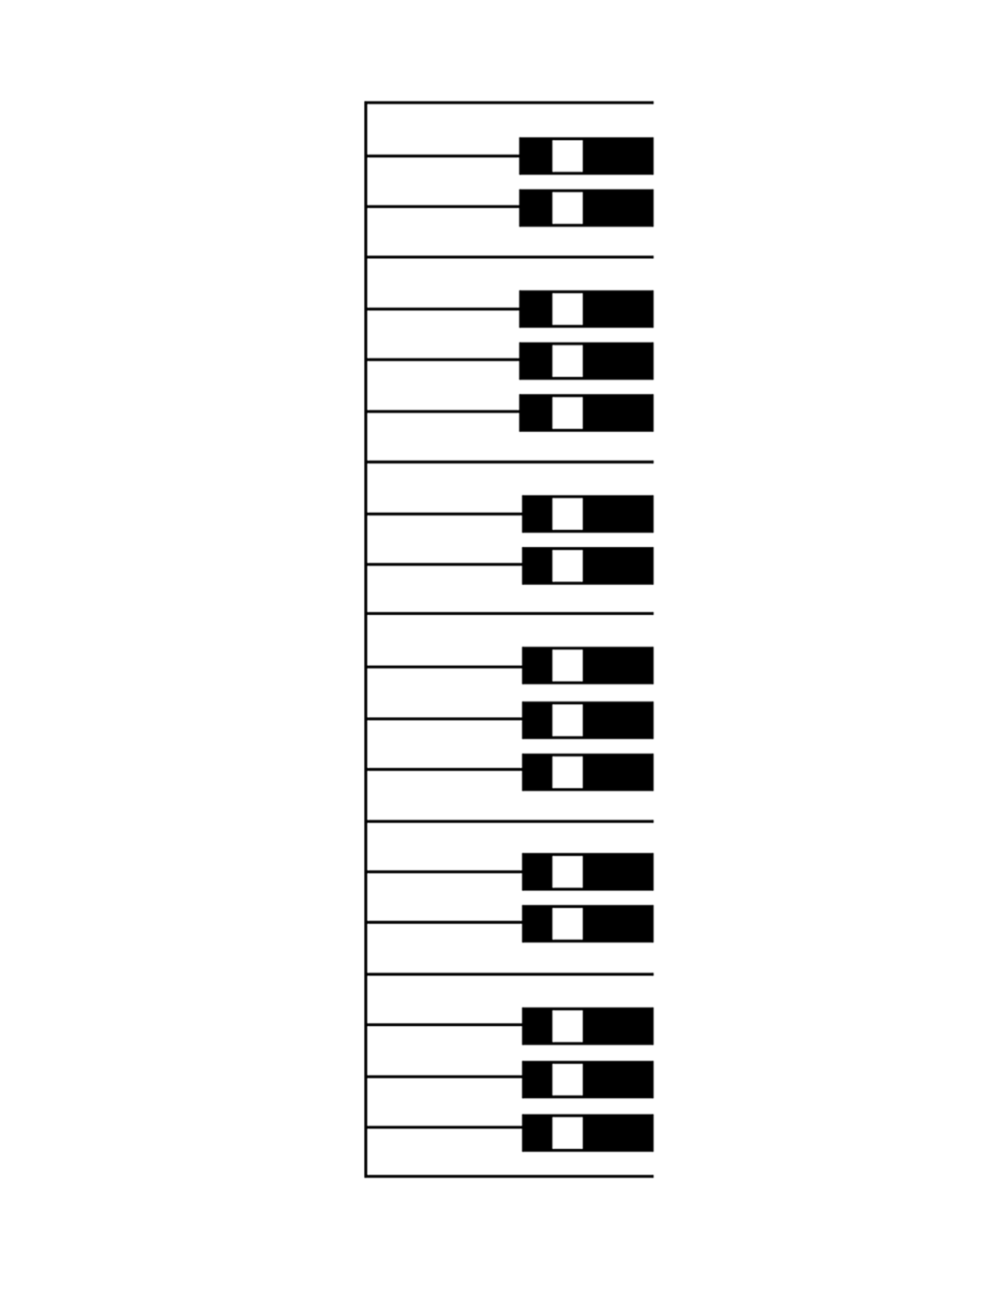 medium resolution of Blank Piano Keyboard Worksheet Clipart - Free to use Clip Art Resource -  ClipArt Best - ClipArt Best